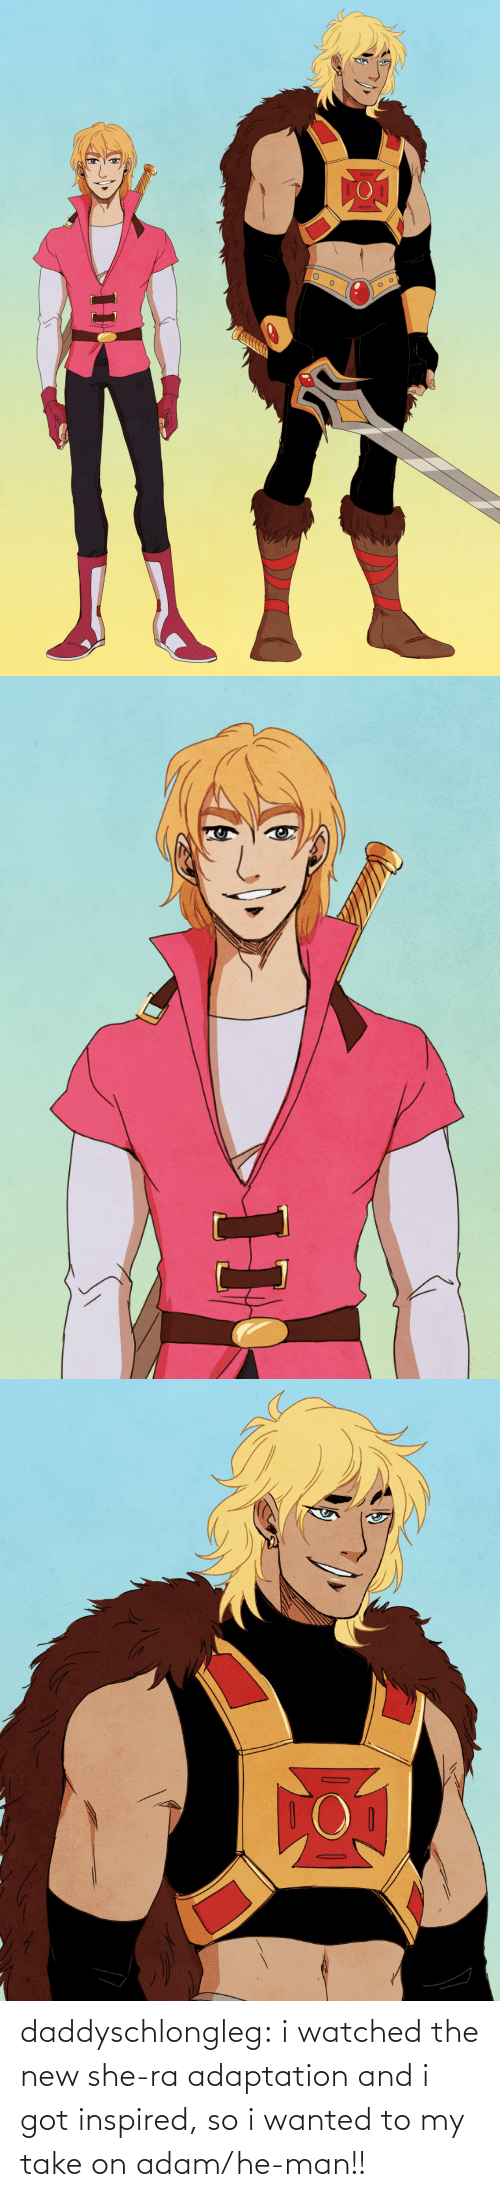 Tumblr, He-Man, and Blog: daddyschlongleg:  i watched the new she-ra adaptation and i got inspired, so i wanted to my take on adam/he-man!!